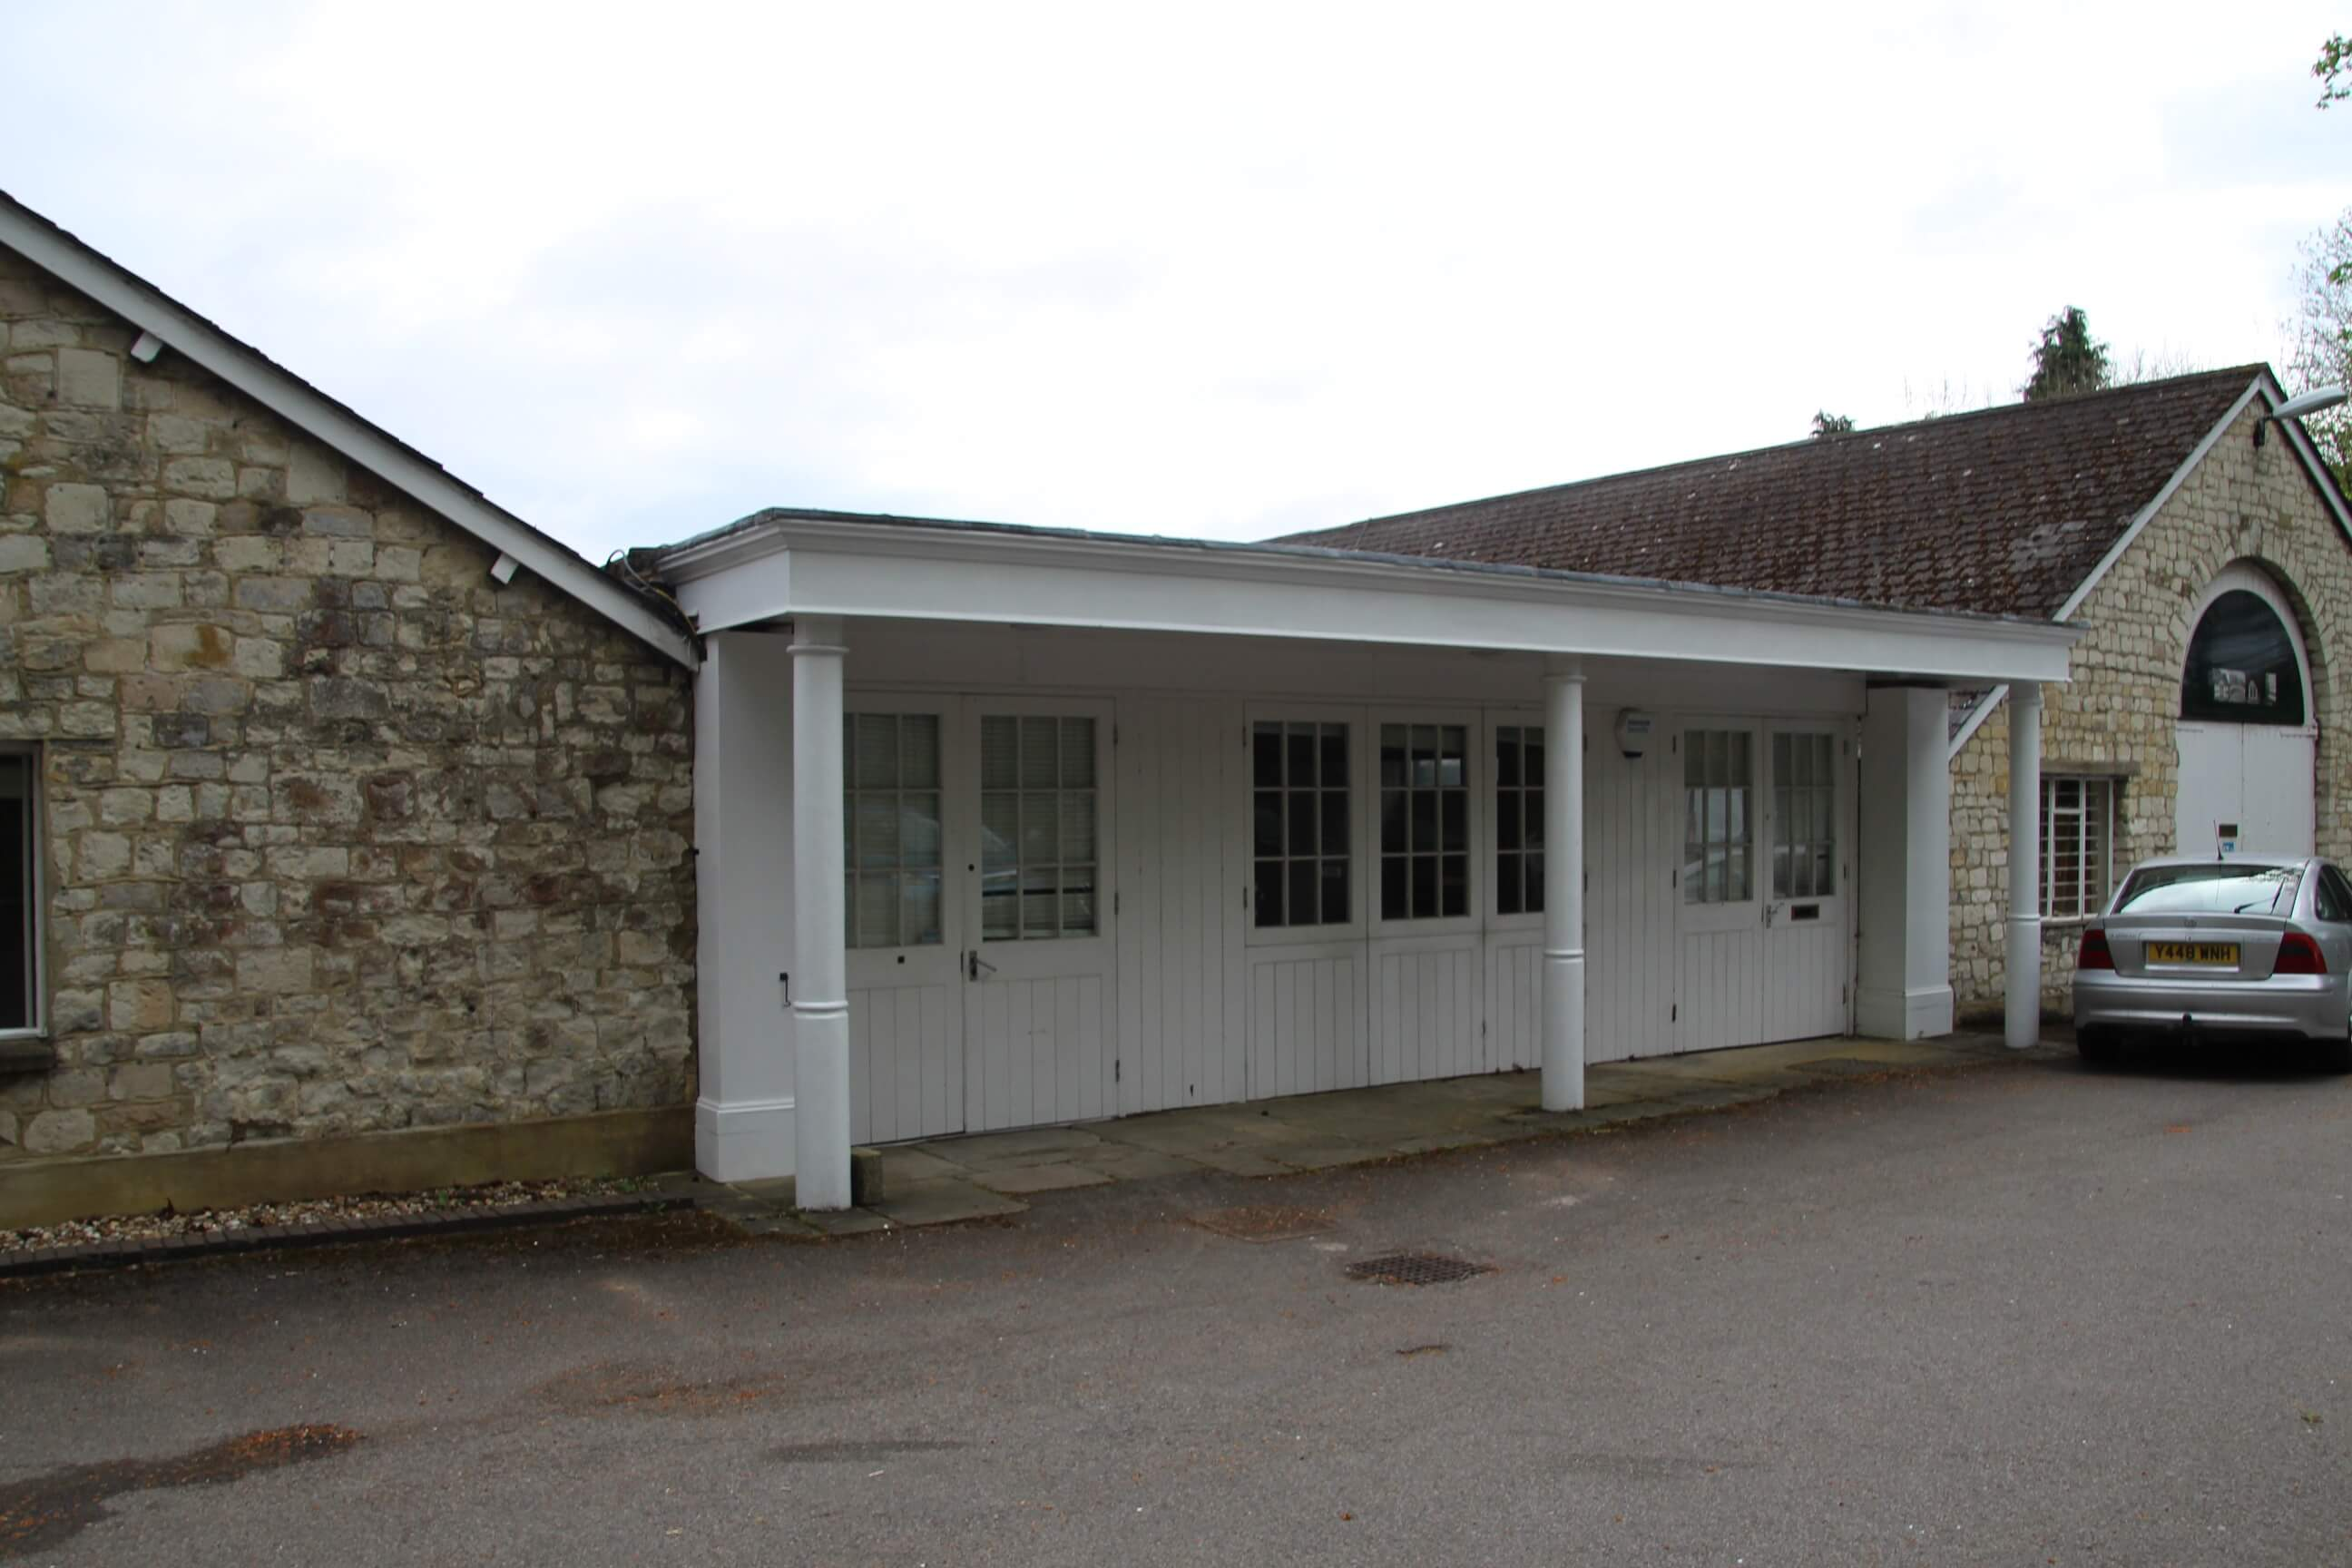 Industrial letting at The Factory, Dippenhall, Nr Farnham